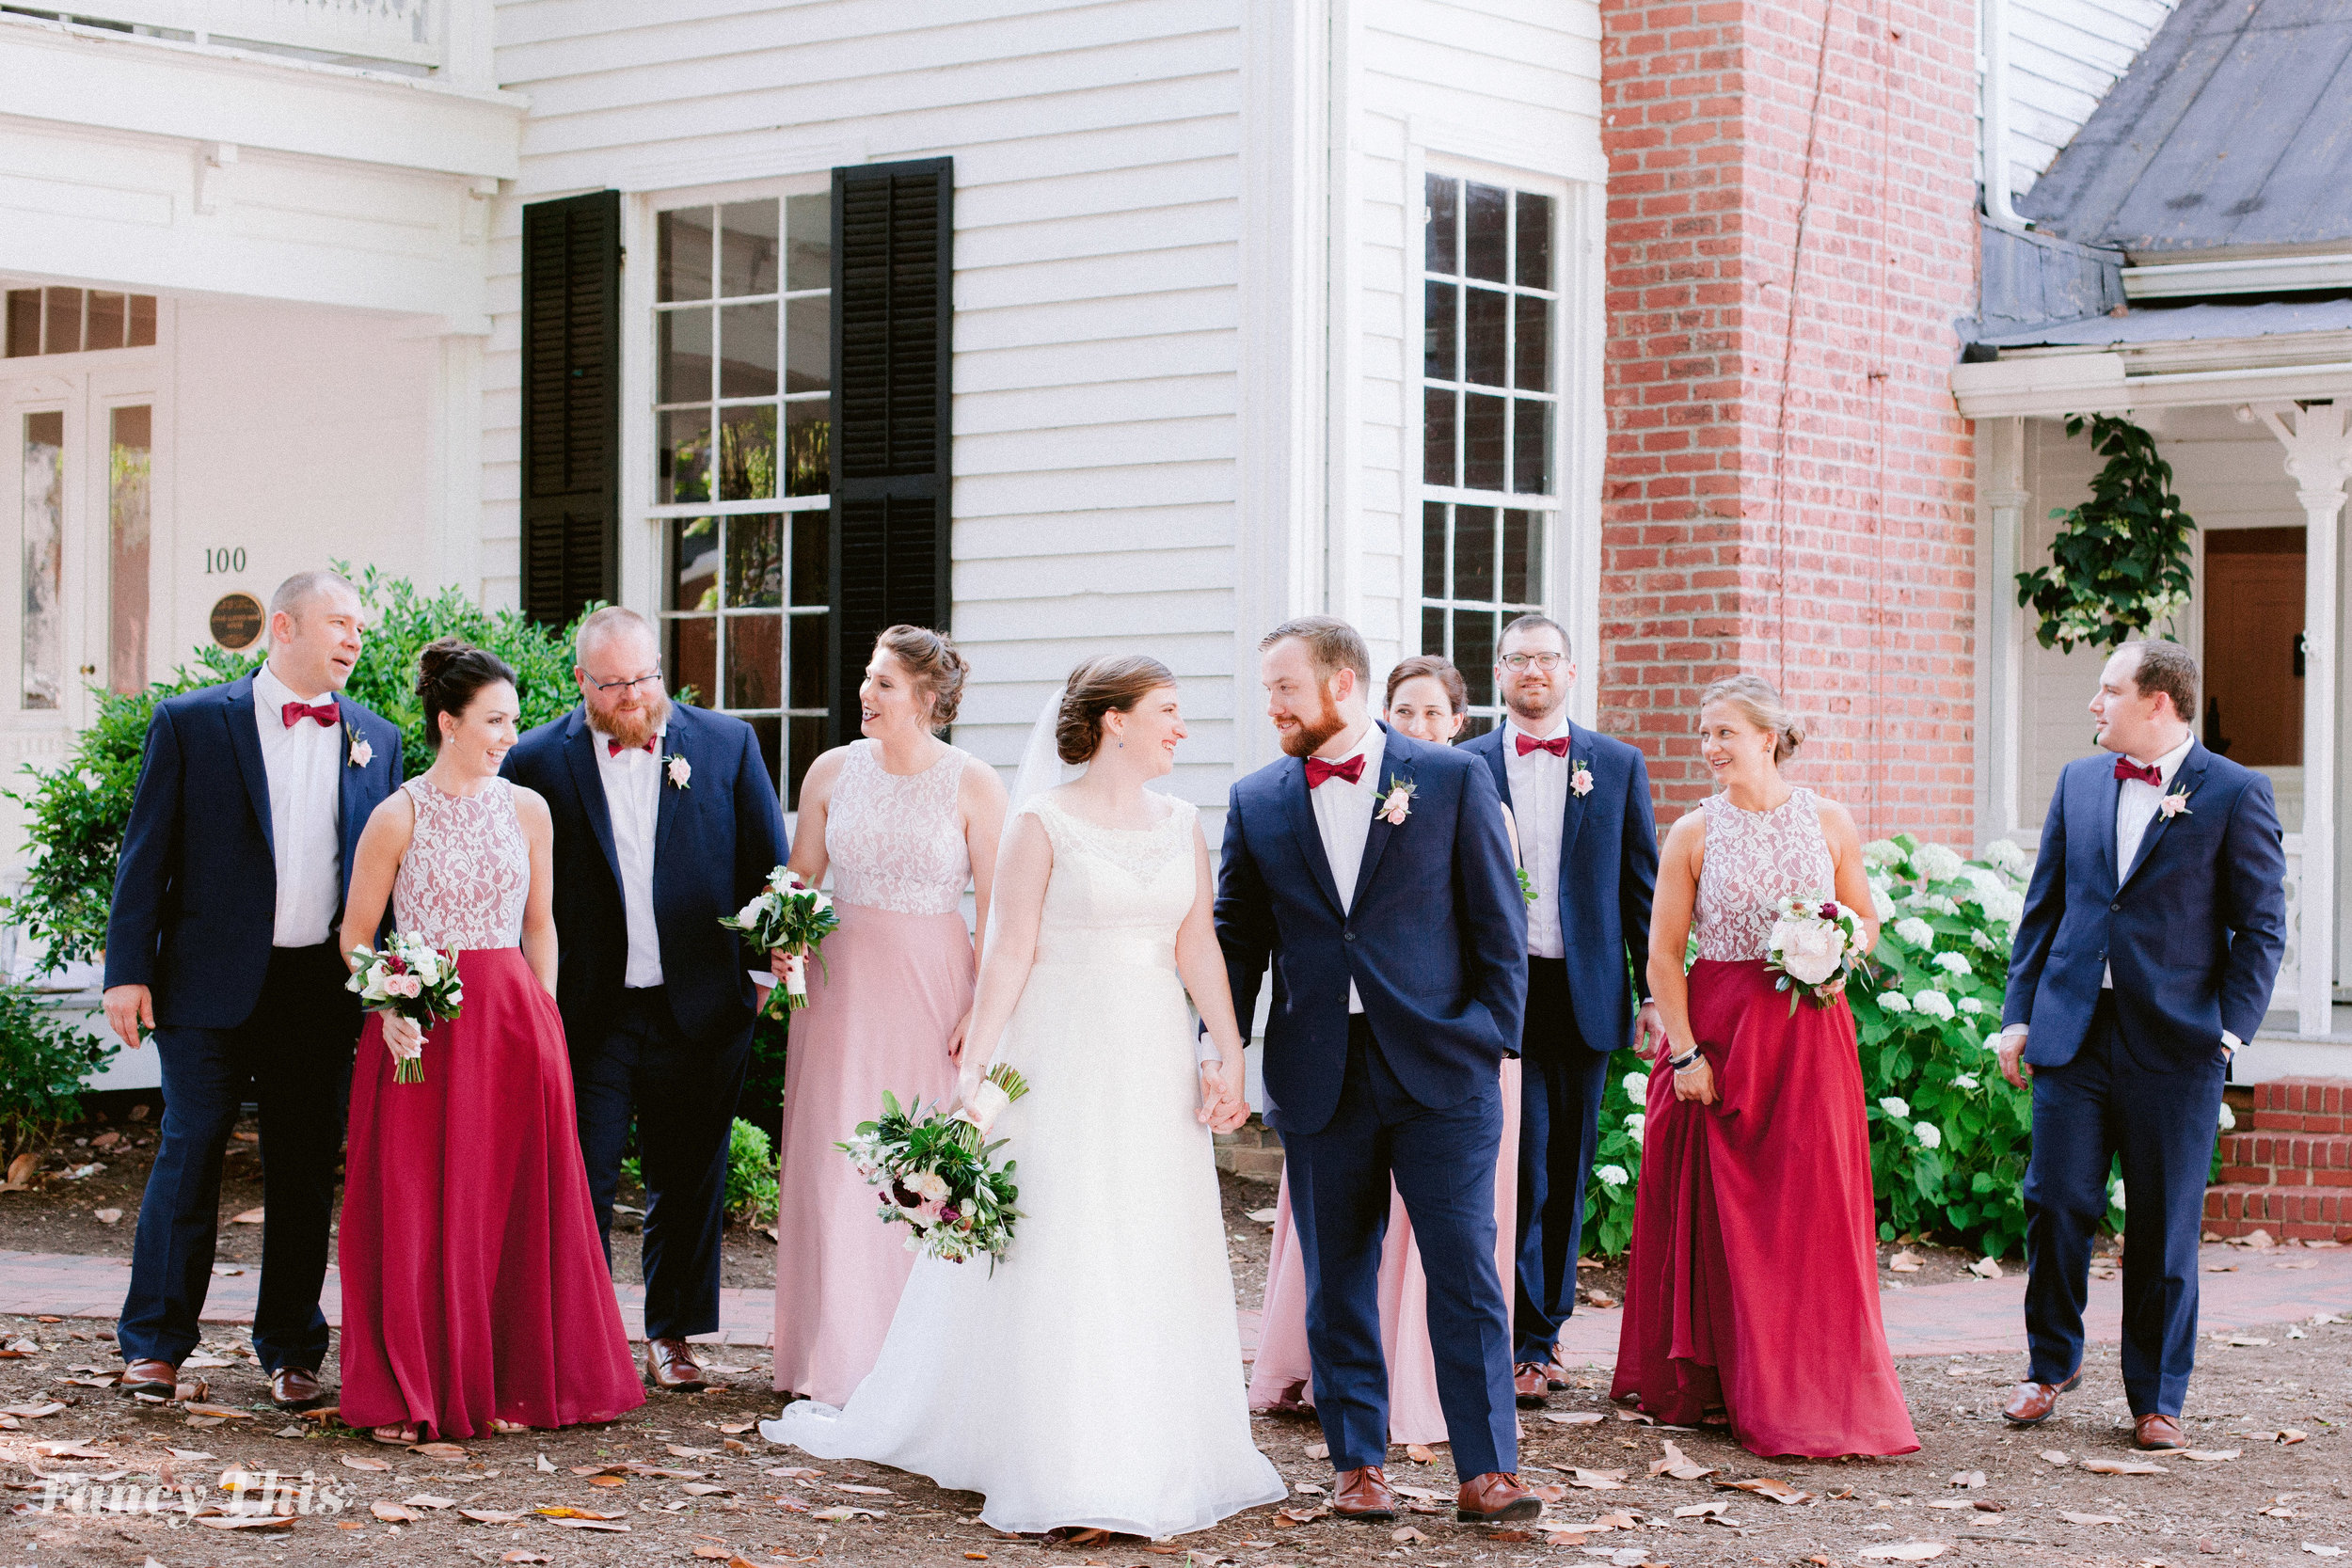 themimshousewedding_summerweddinginhollysprings_fancythis-364.jpg